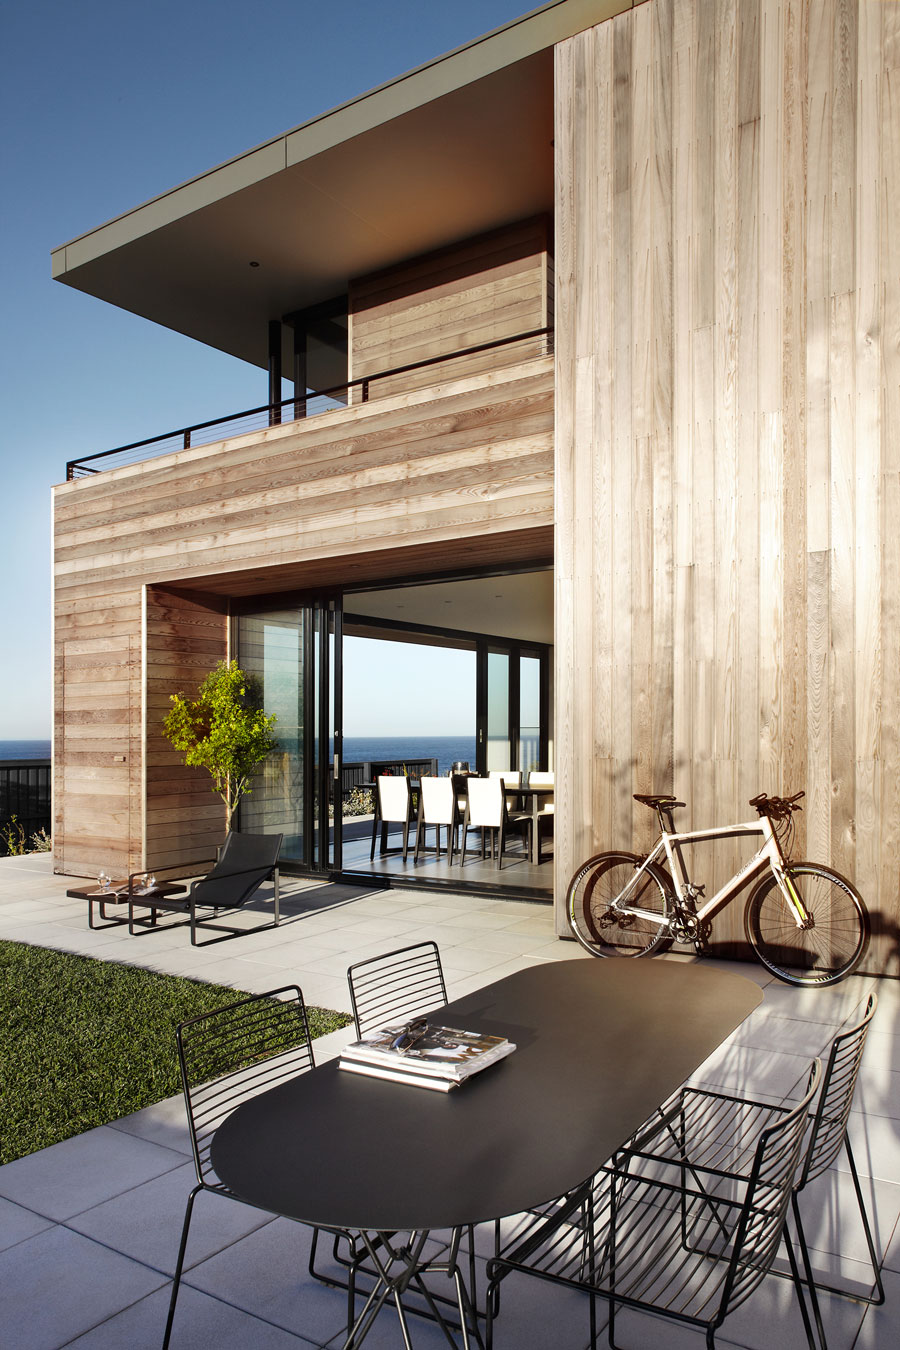 Glass doors connect the outdoors with the interior